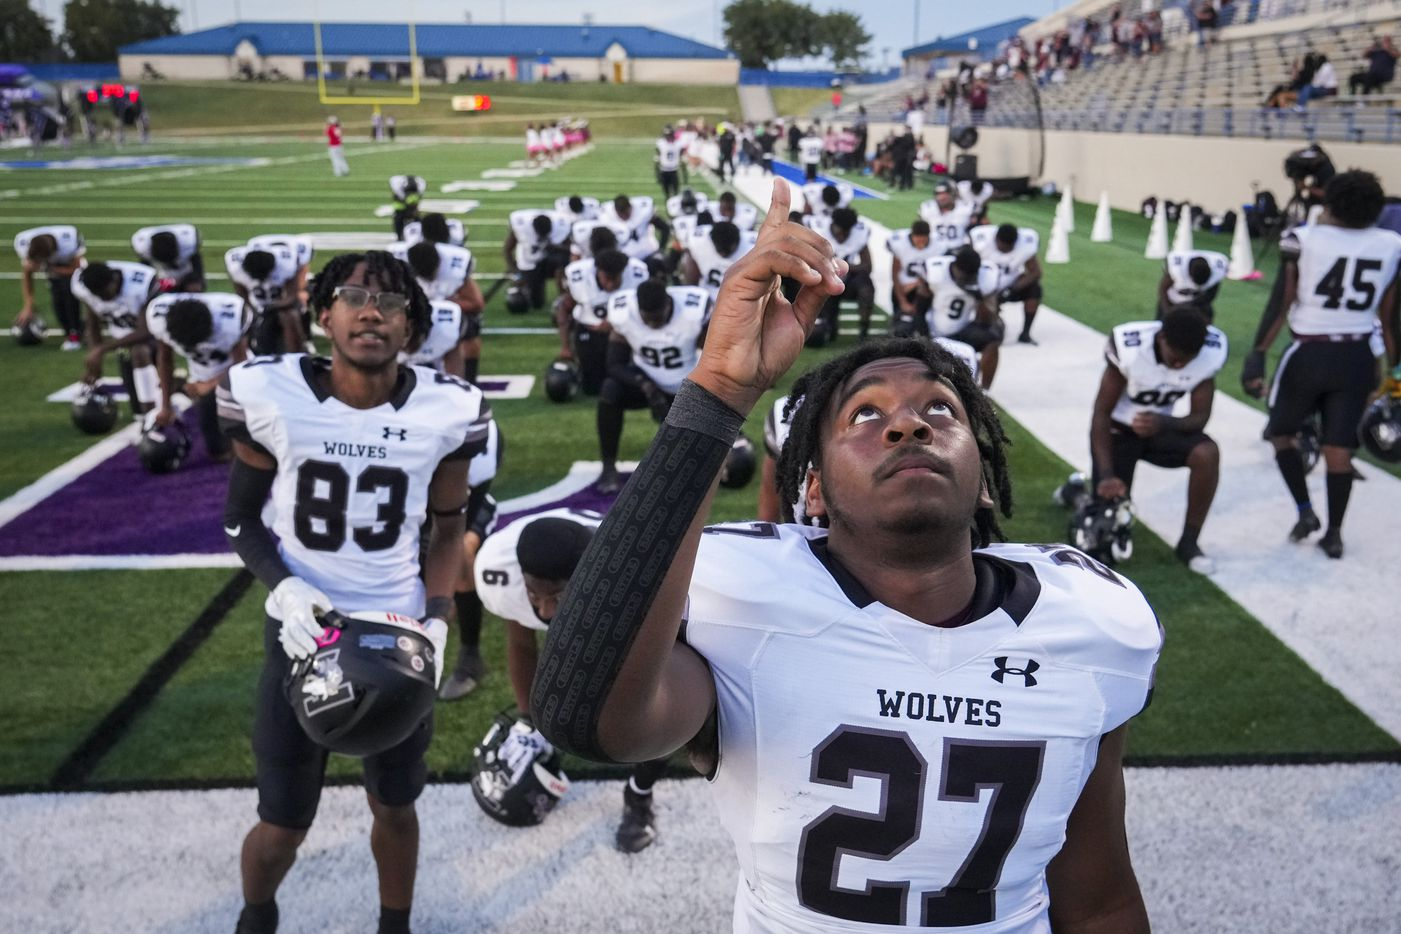 Mansfield Timberview's Deshaun Pratt (27) points skyward after kneeling in prayer with his teammates before facing Waco University in a high school football game at Waco ISD Stadium on Friday, Oct. 8, 2021, in Waco, Texas. A shooting following a classroom fight on Wednesday injured four people at Timberview High School.